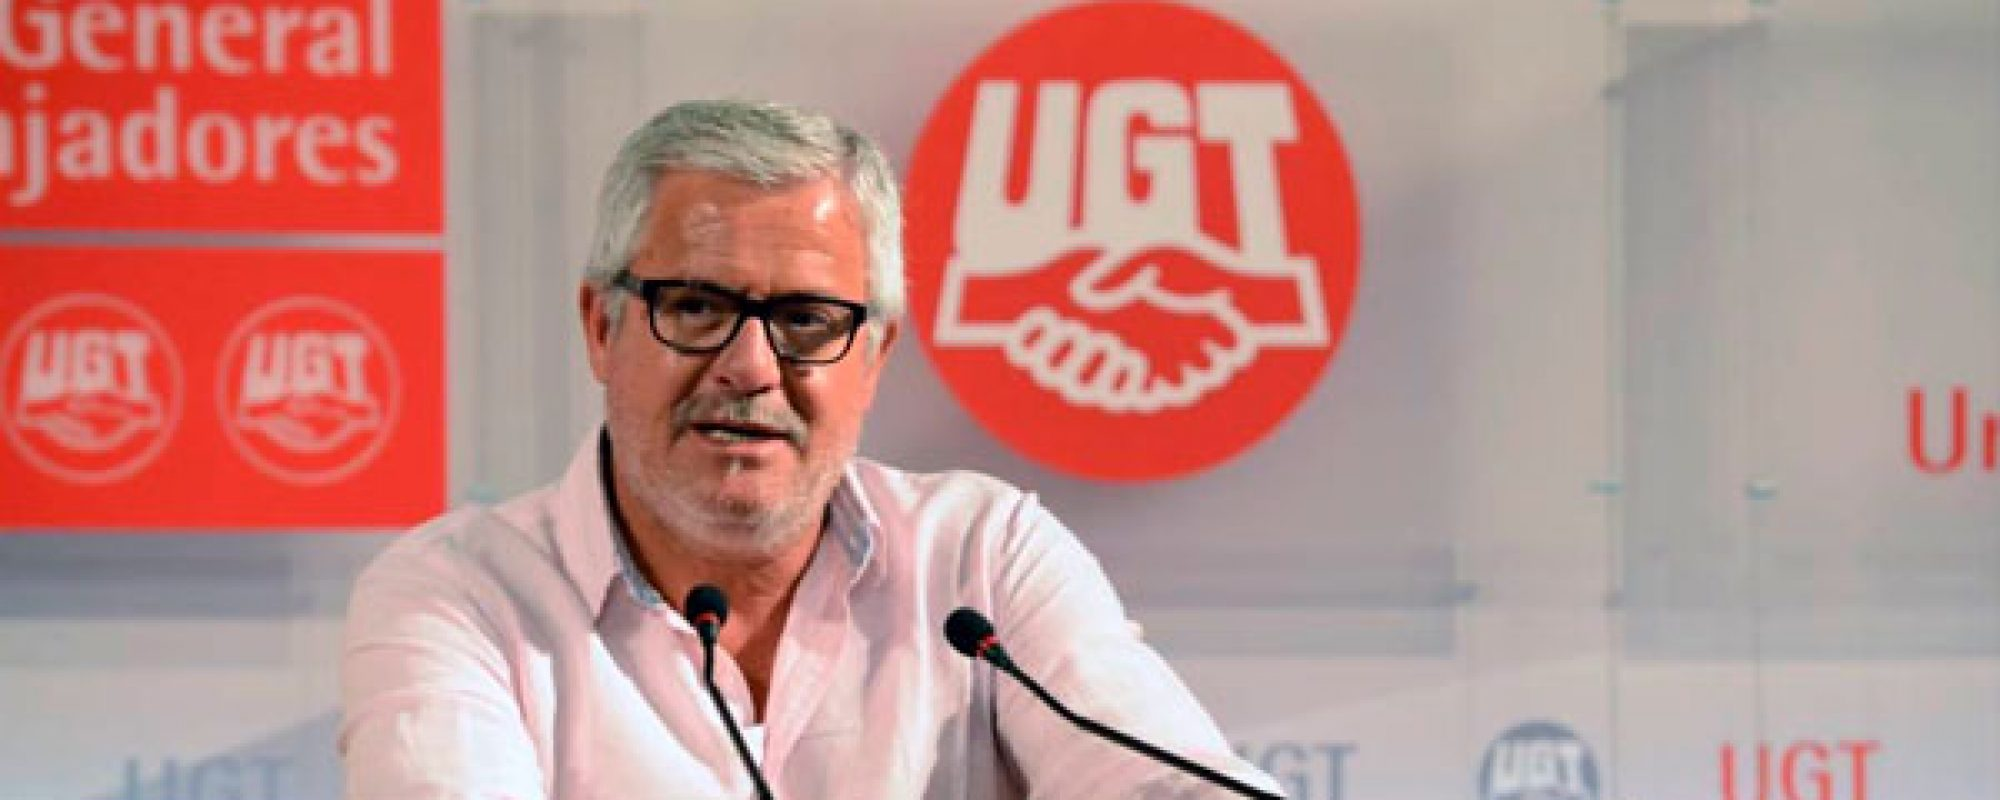 gonzalo-pino-ugt-articuloopinon